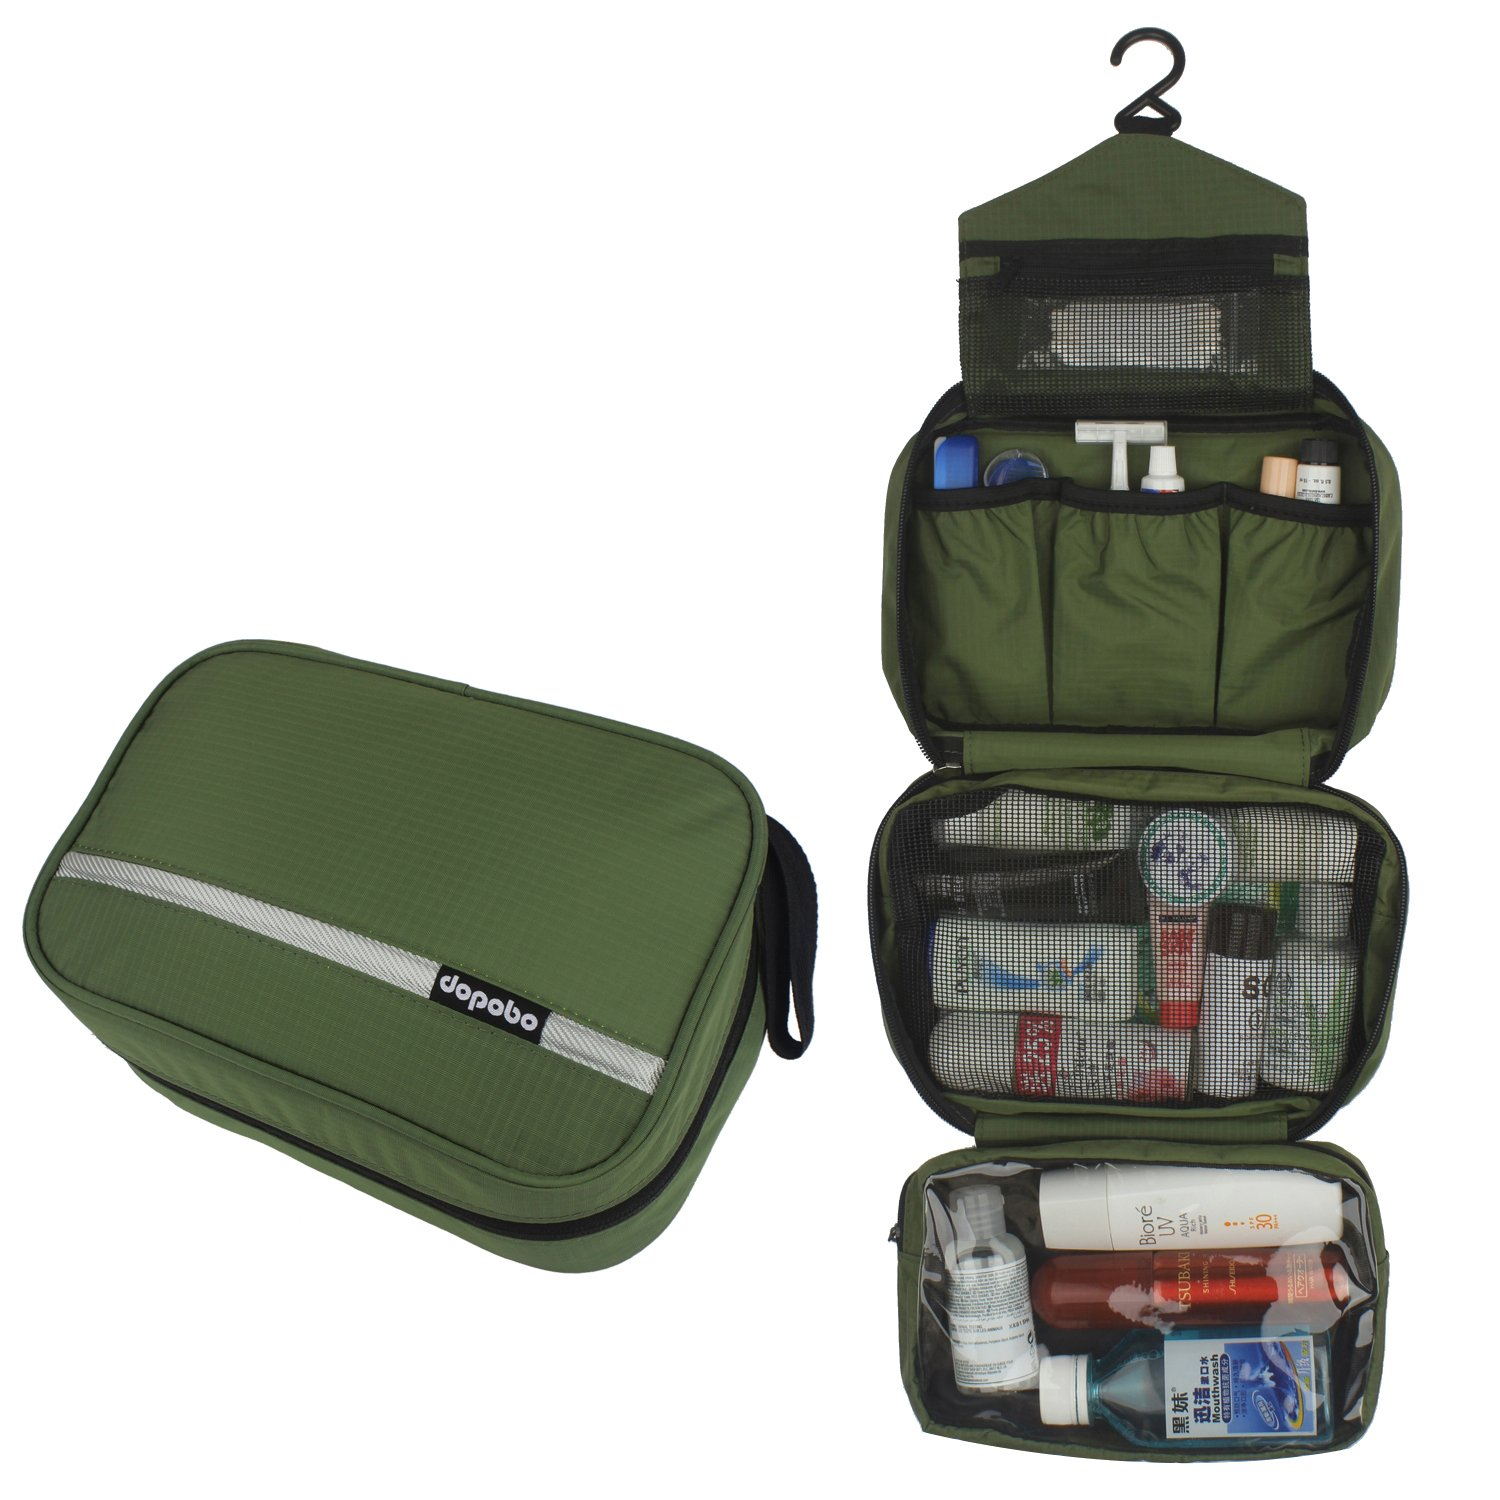 Dopobo Travelling Toiletry Bag Portable Hanging Water-Resistant Wash Bag for Travelling, Business Trip, Camping (army green) by Dopobo (Image #2)